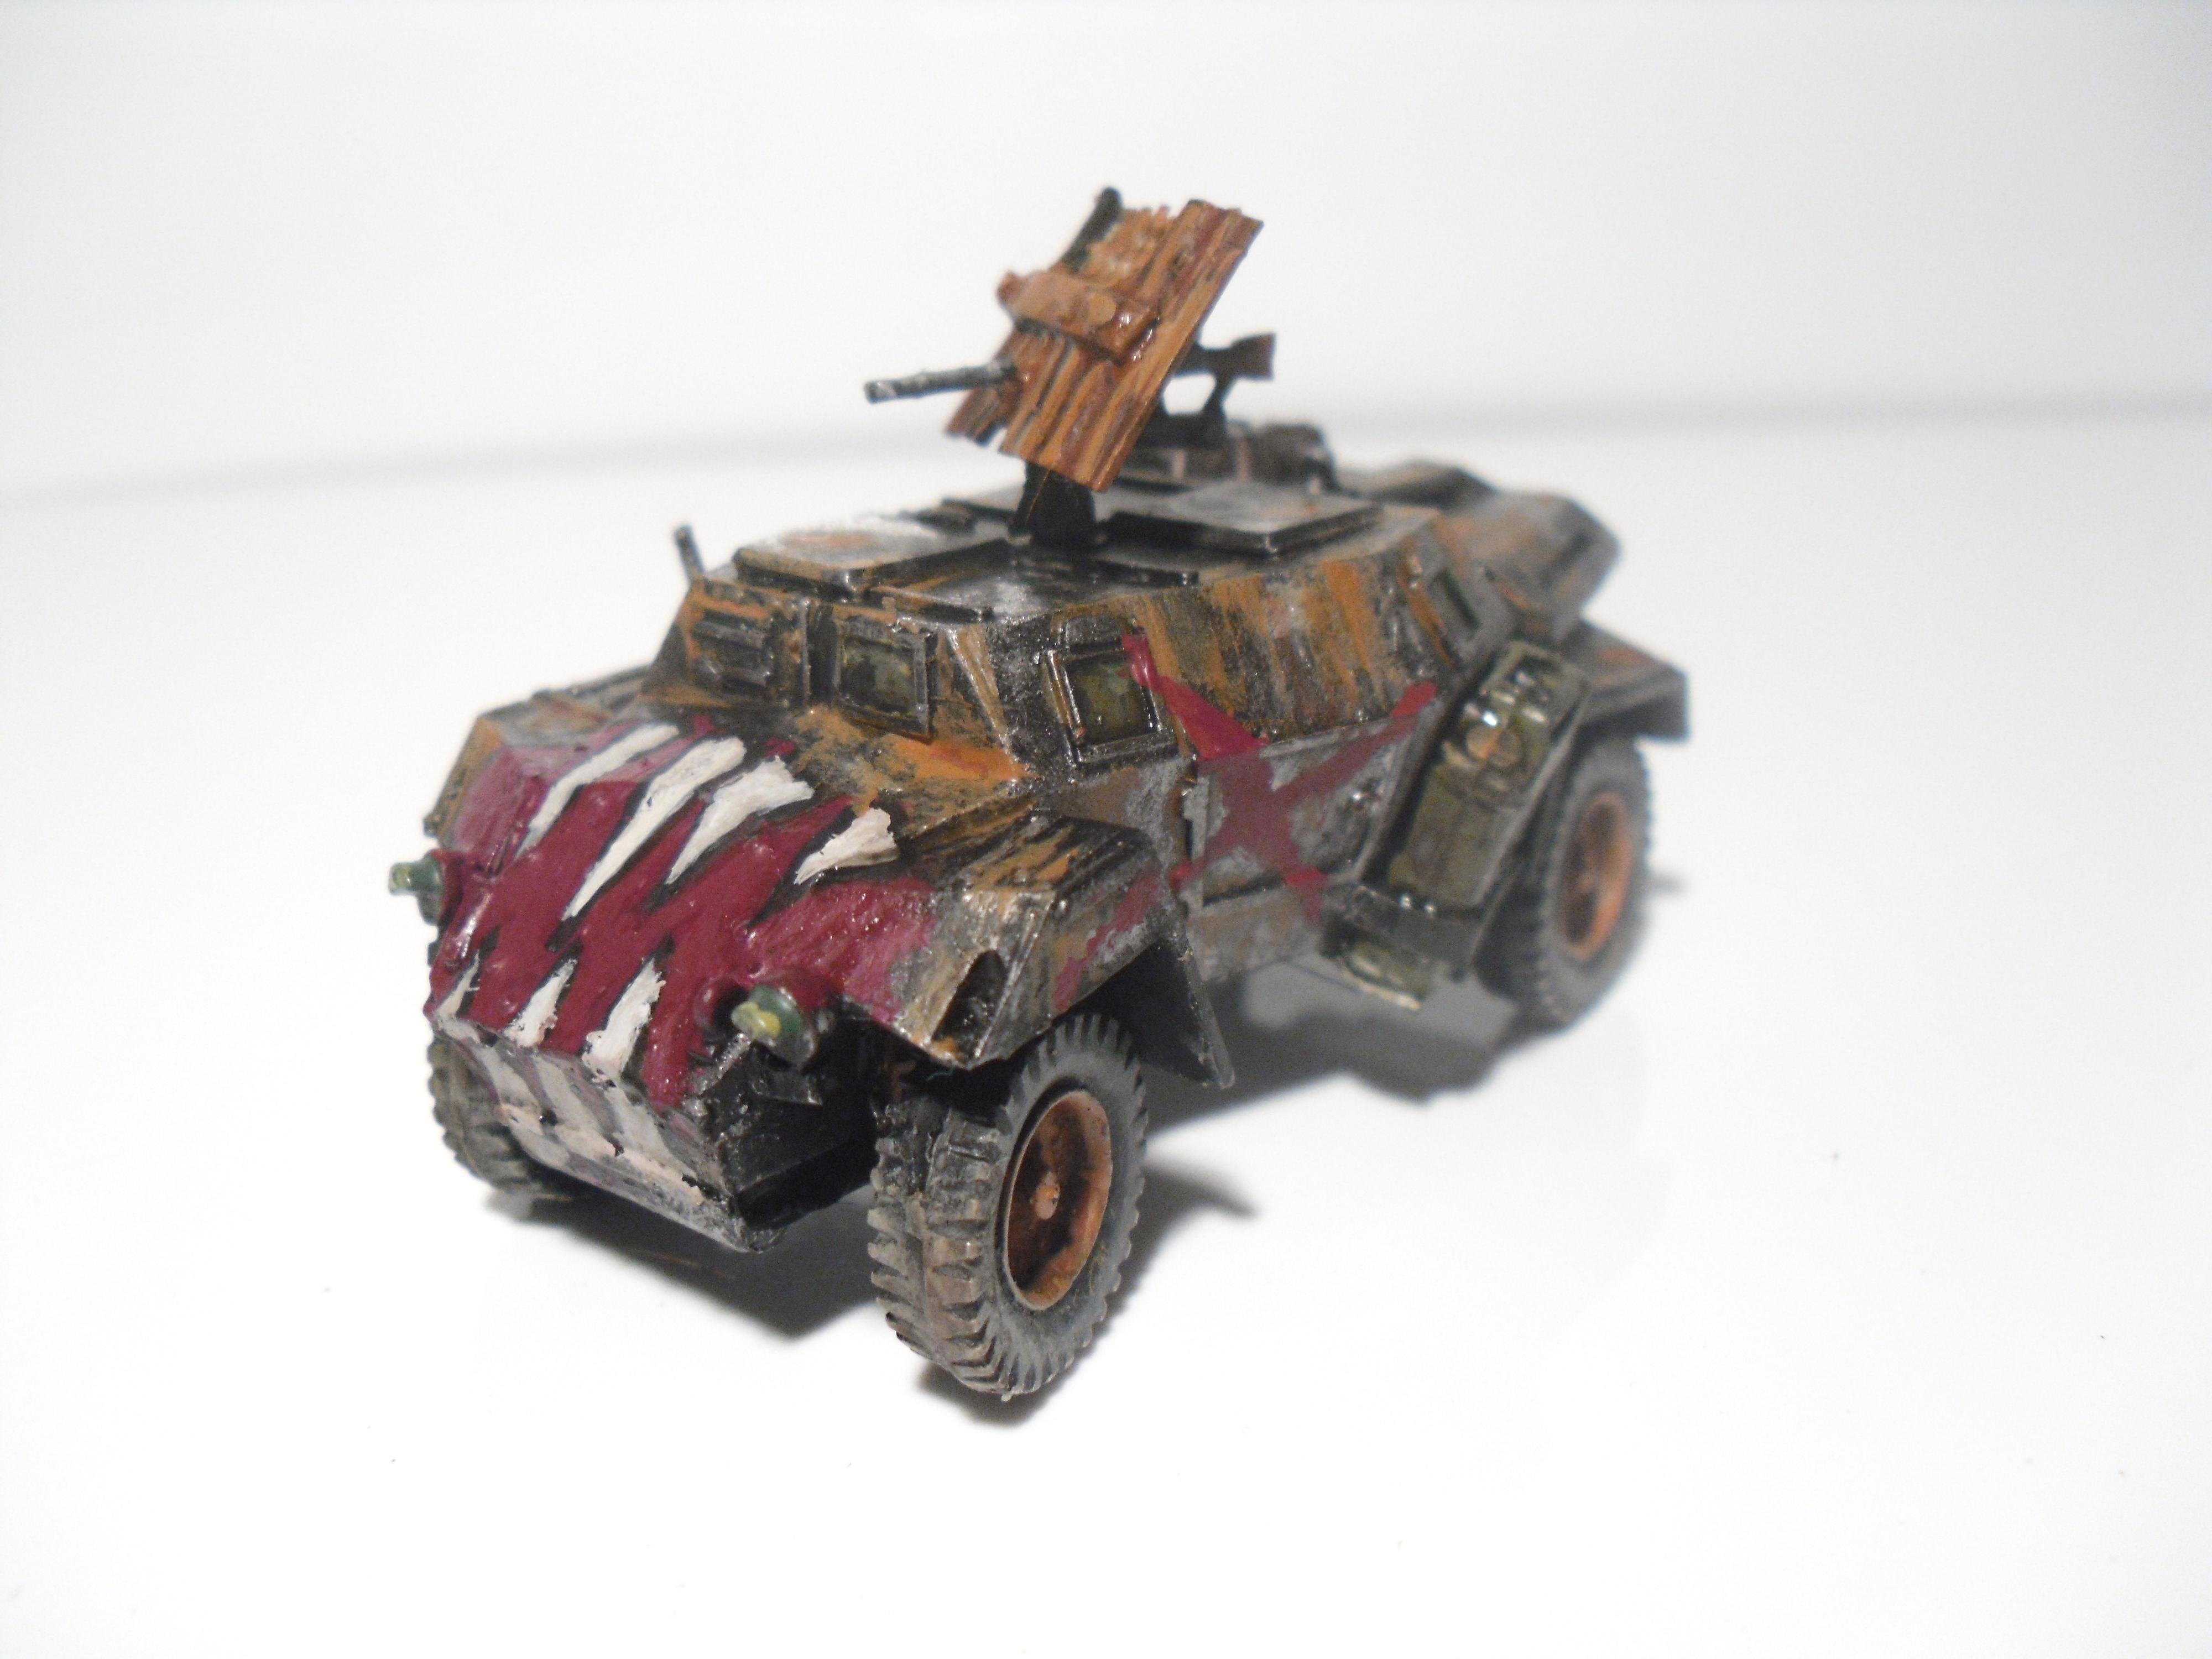 Fallout, Fallout. Post Apocalyptic, Hummer, Jeep, Post Apocalyptic, Post-apocalyptic, Truck